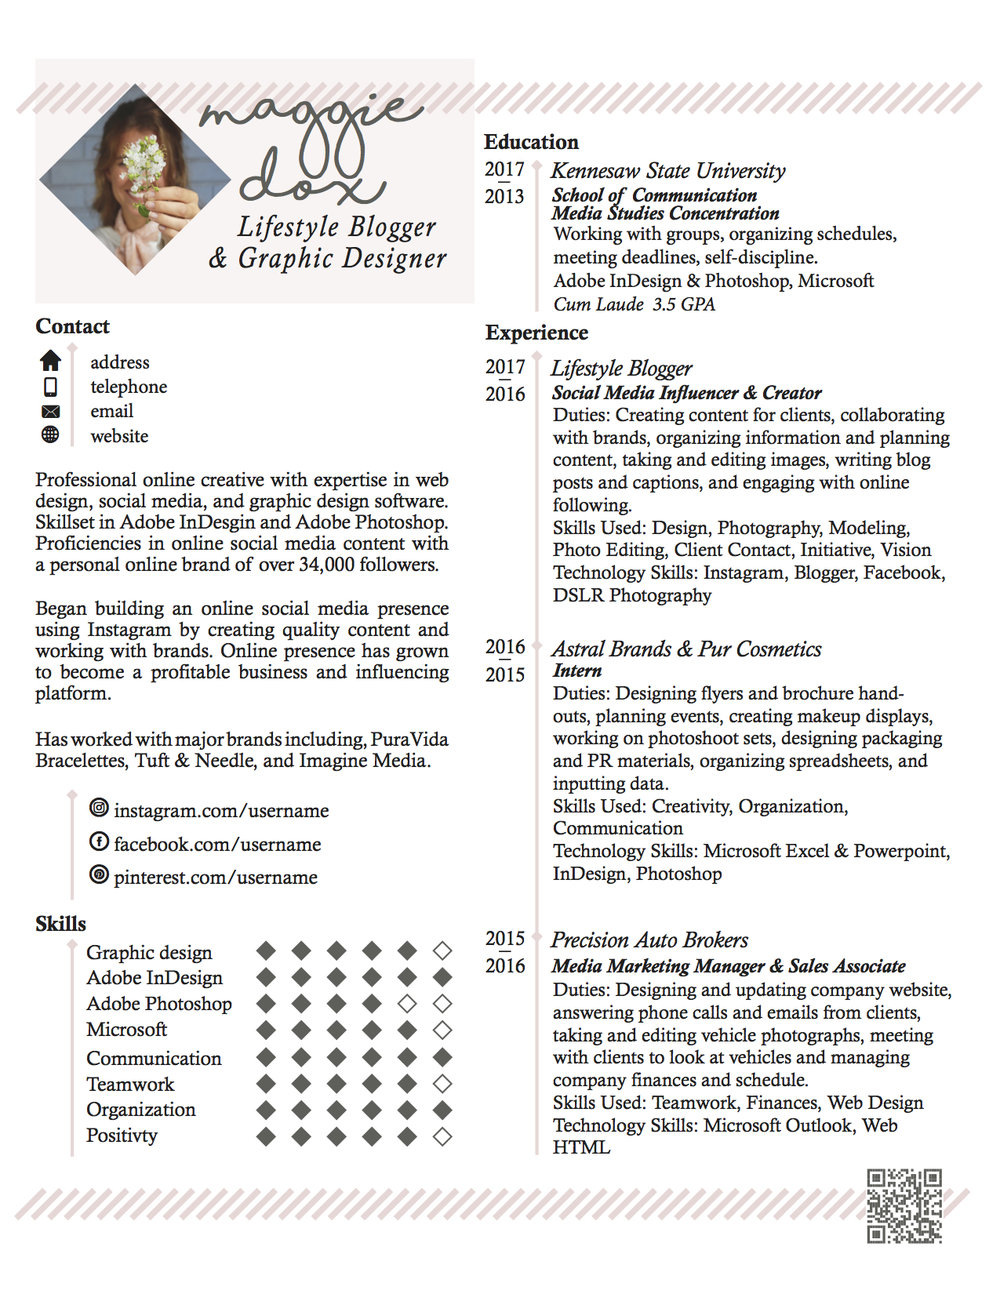 CREATIVE RESUME - [CLICK TO ZOOM]A simple, stylish design that works for any creative seeking an eye-catching result.